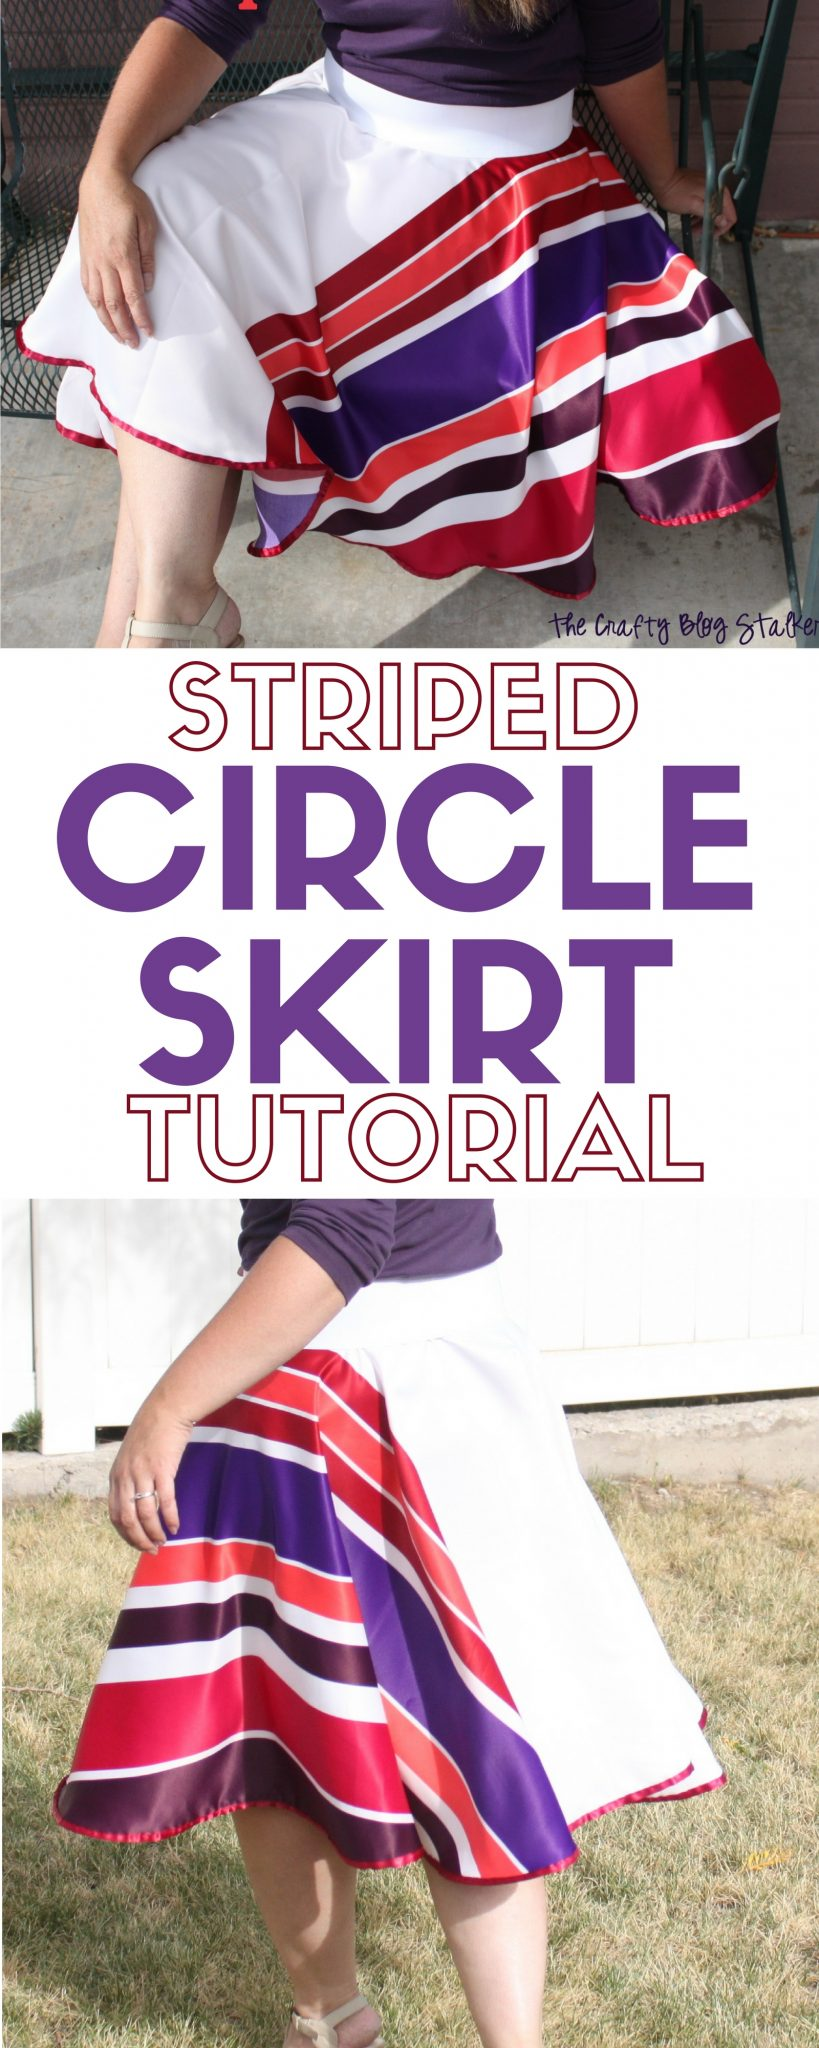 Sew a Circle Skirt in any fabric you choose to show off your fashion and style. A simple DIY craft tutorial idea perfect for the beginning sewer.